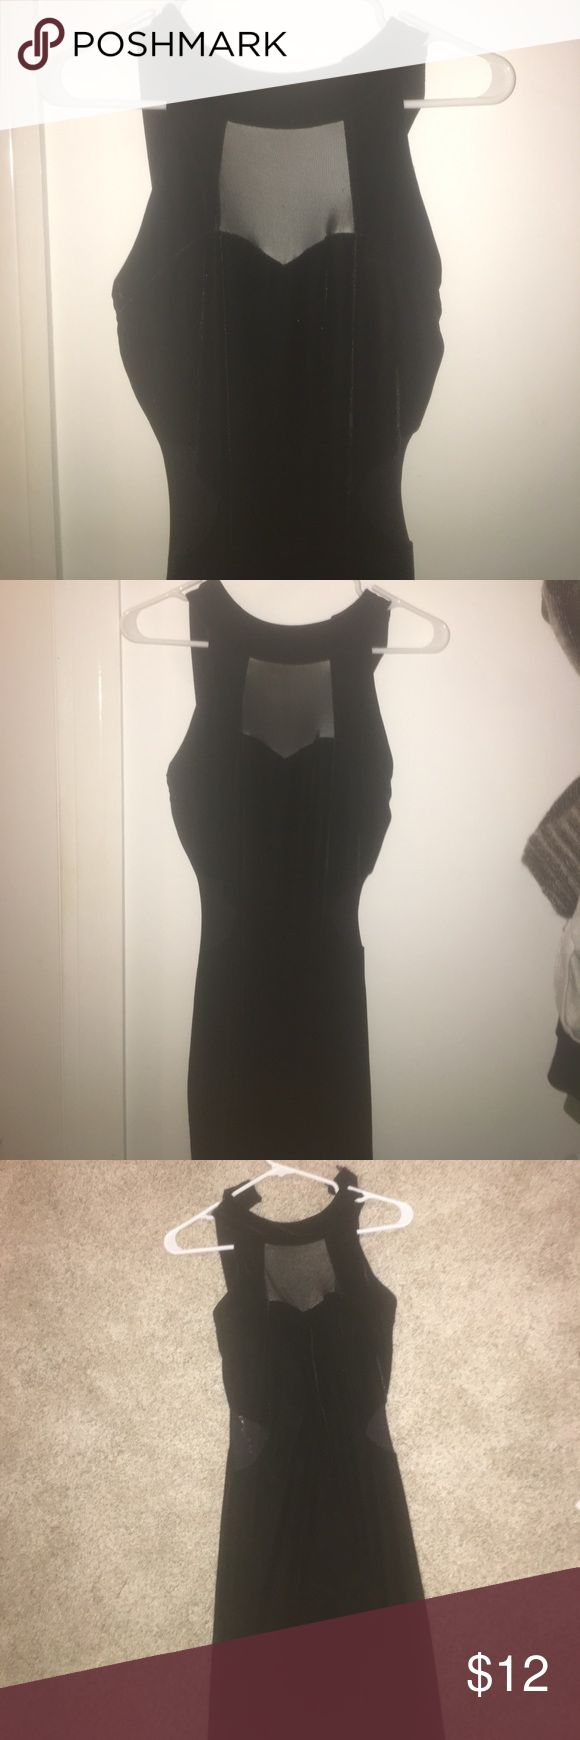 Body Central Black Velvet Long Fitted Dress Beautiful new condition with tags Body Central velvet dress! Cute mesh side cutouts, form fitting (really flattering)! Very classy and elegant, it goes down to around my ankles, perfect length. Body Central Dresses Maxi